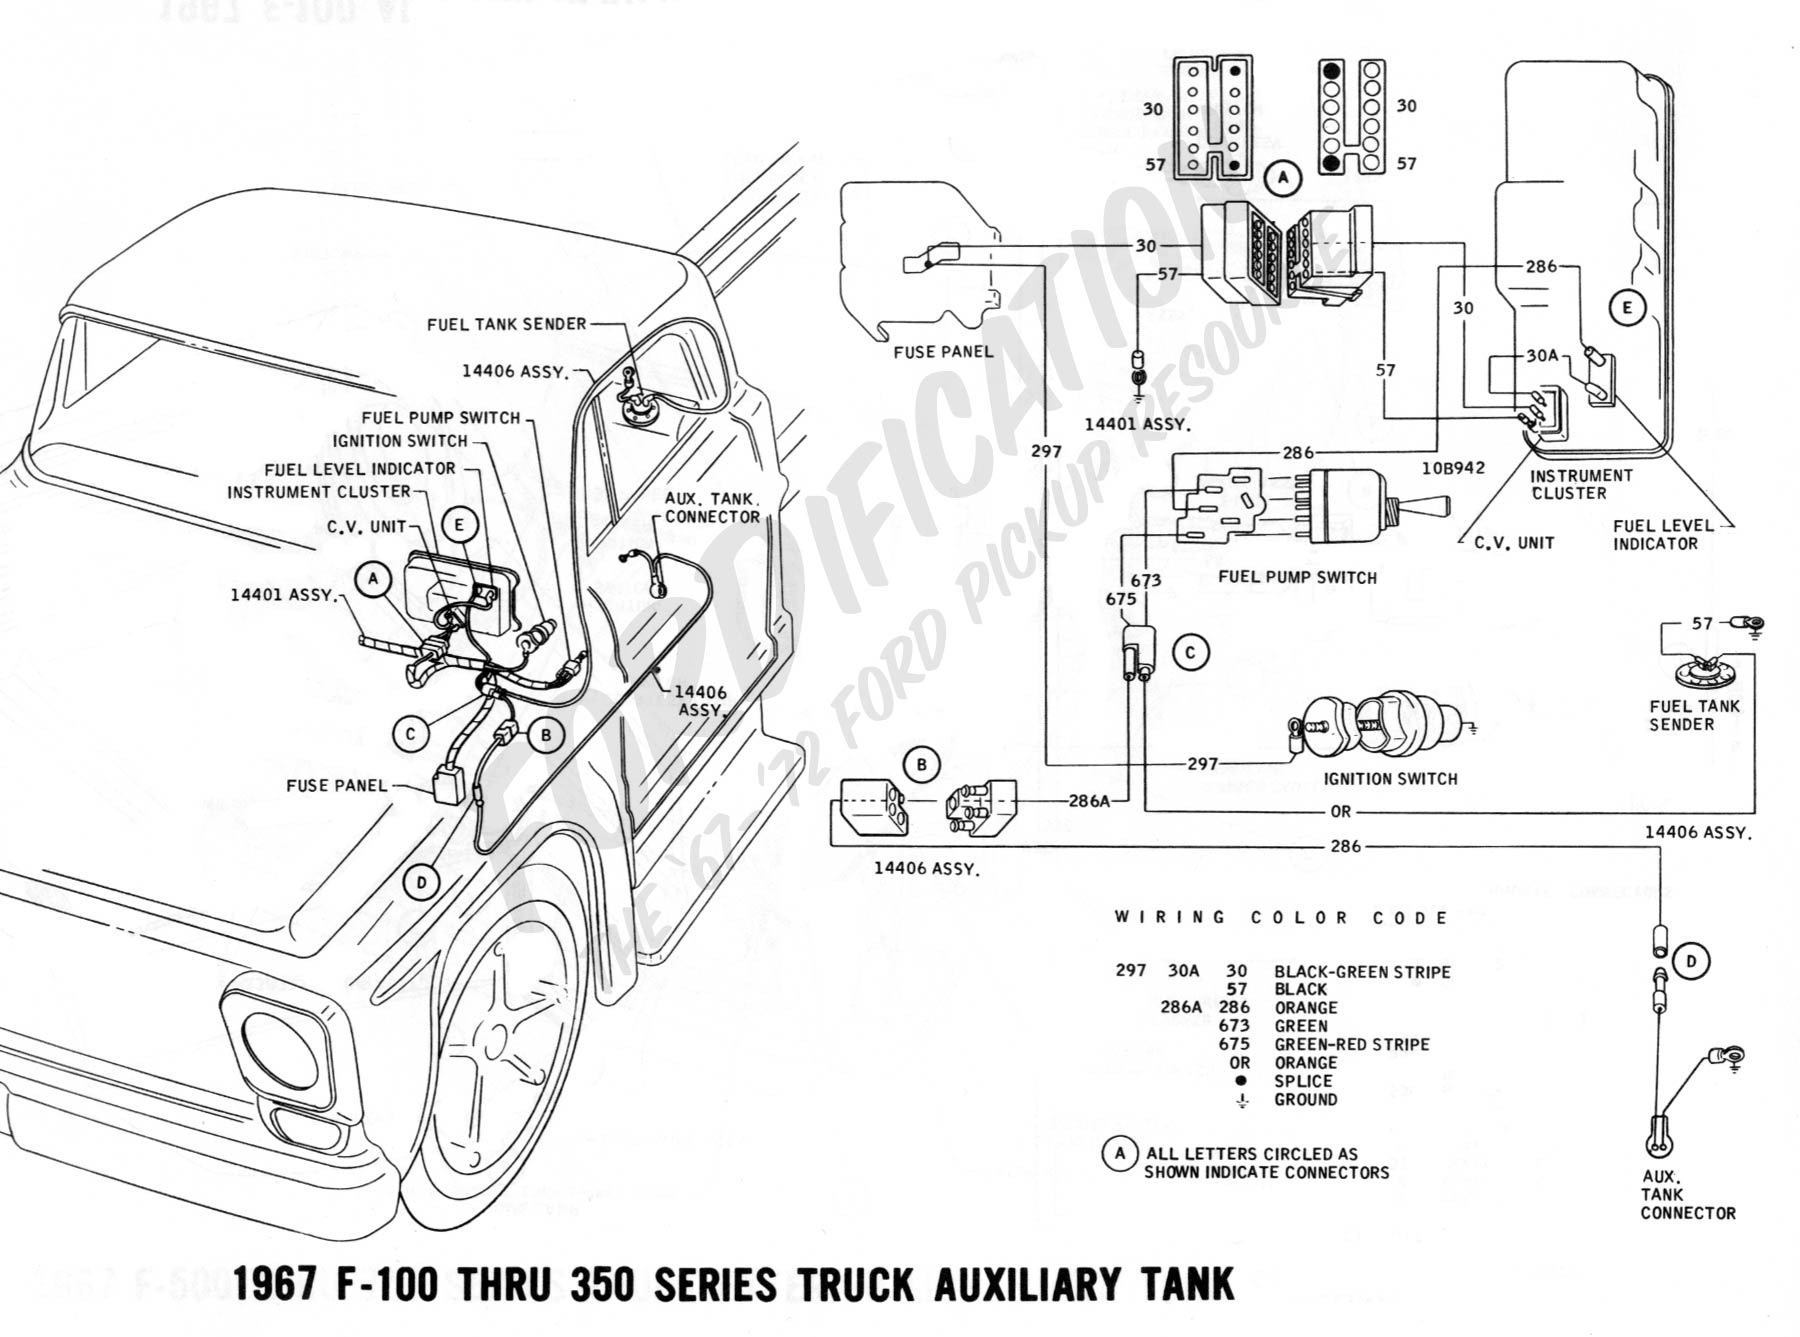 Ford Truck Wiring Diagrams Fuel Library Diagram As Well Chevy Caprice 350 Engine On 92 1967 F 100 Thru Auxiliary Tank